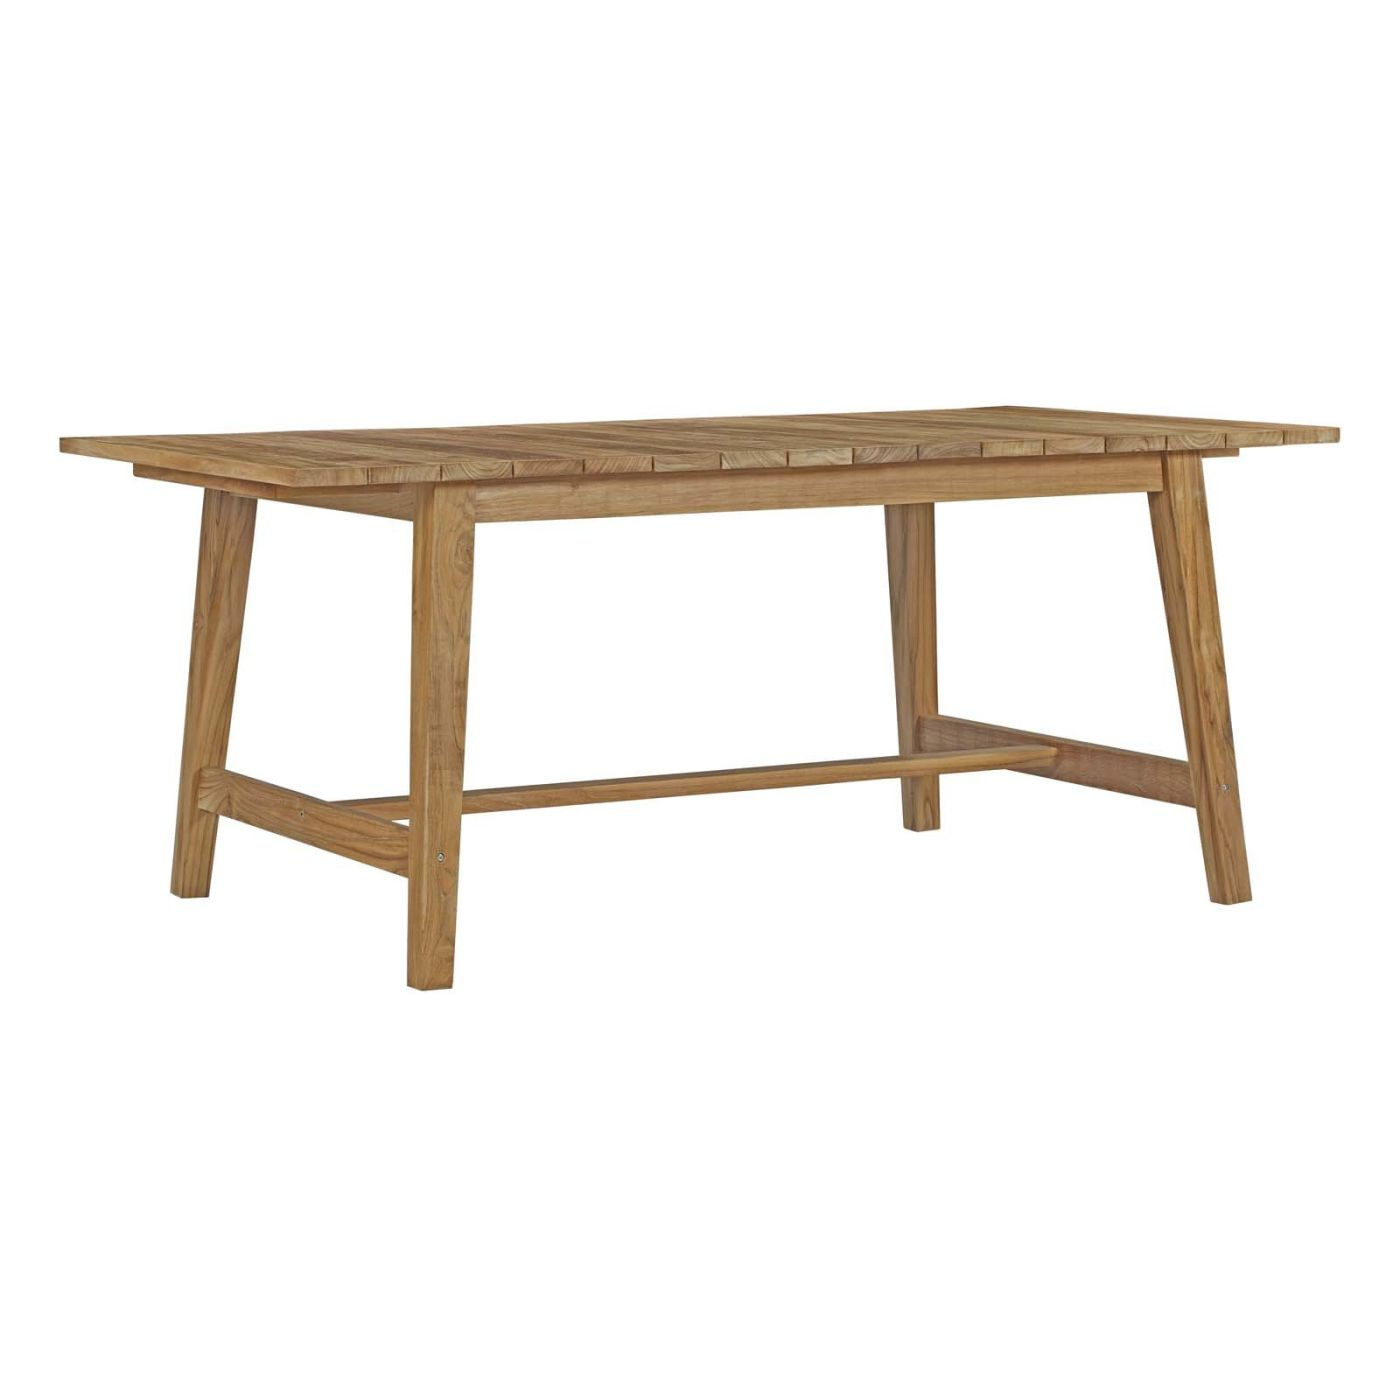 Modway Dorset Outdoor Patio Teak Dining Table EEINAT Only - Outdoor dining table only